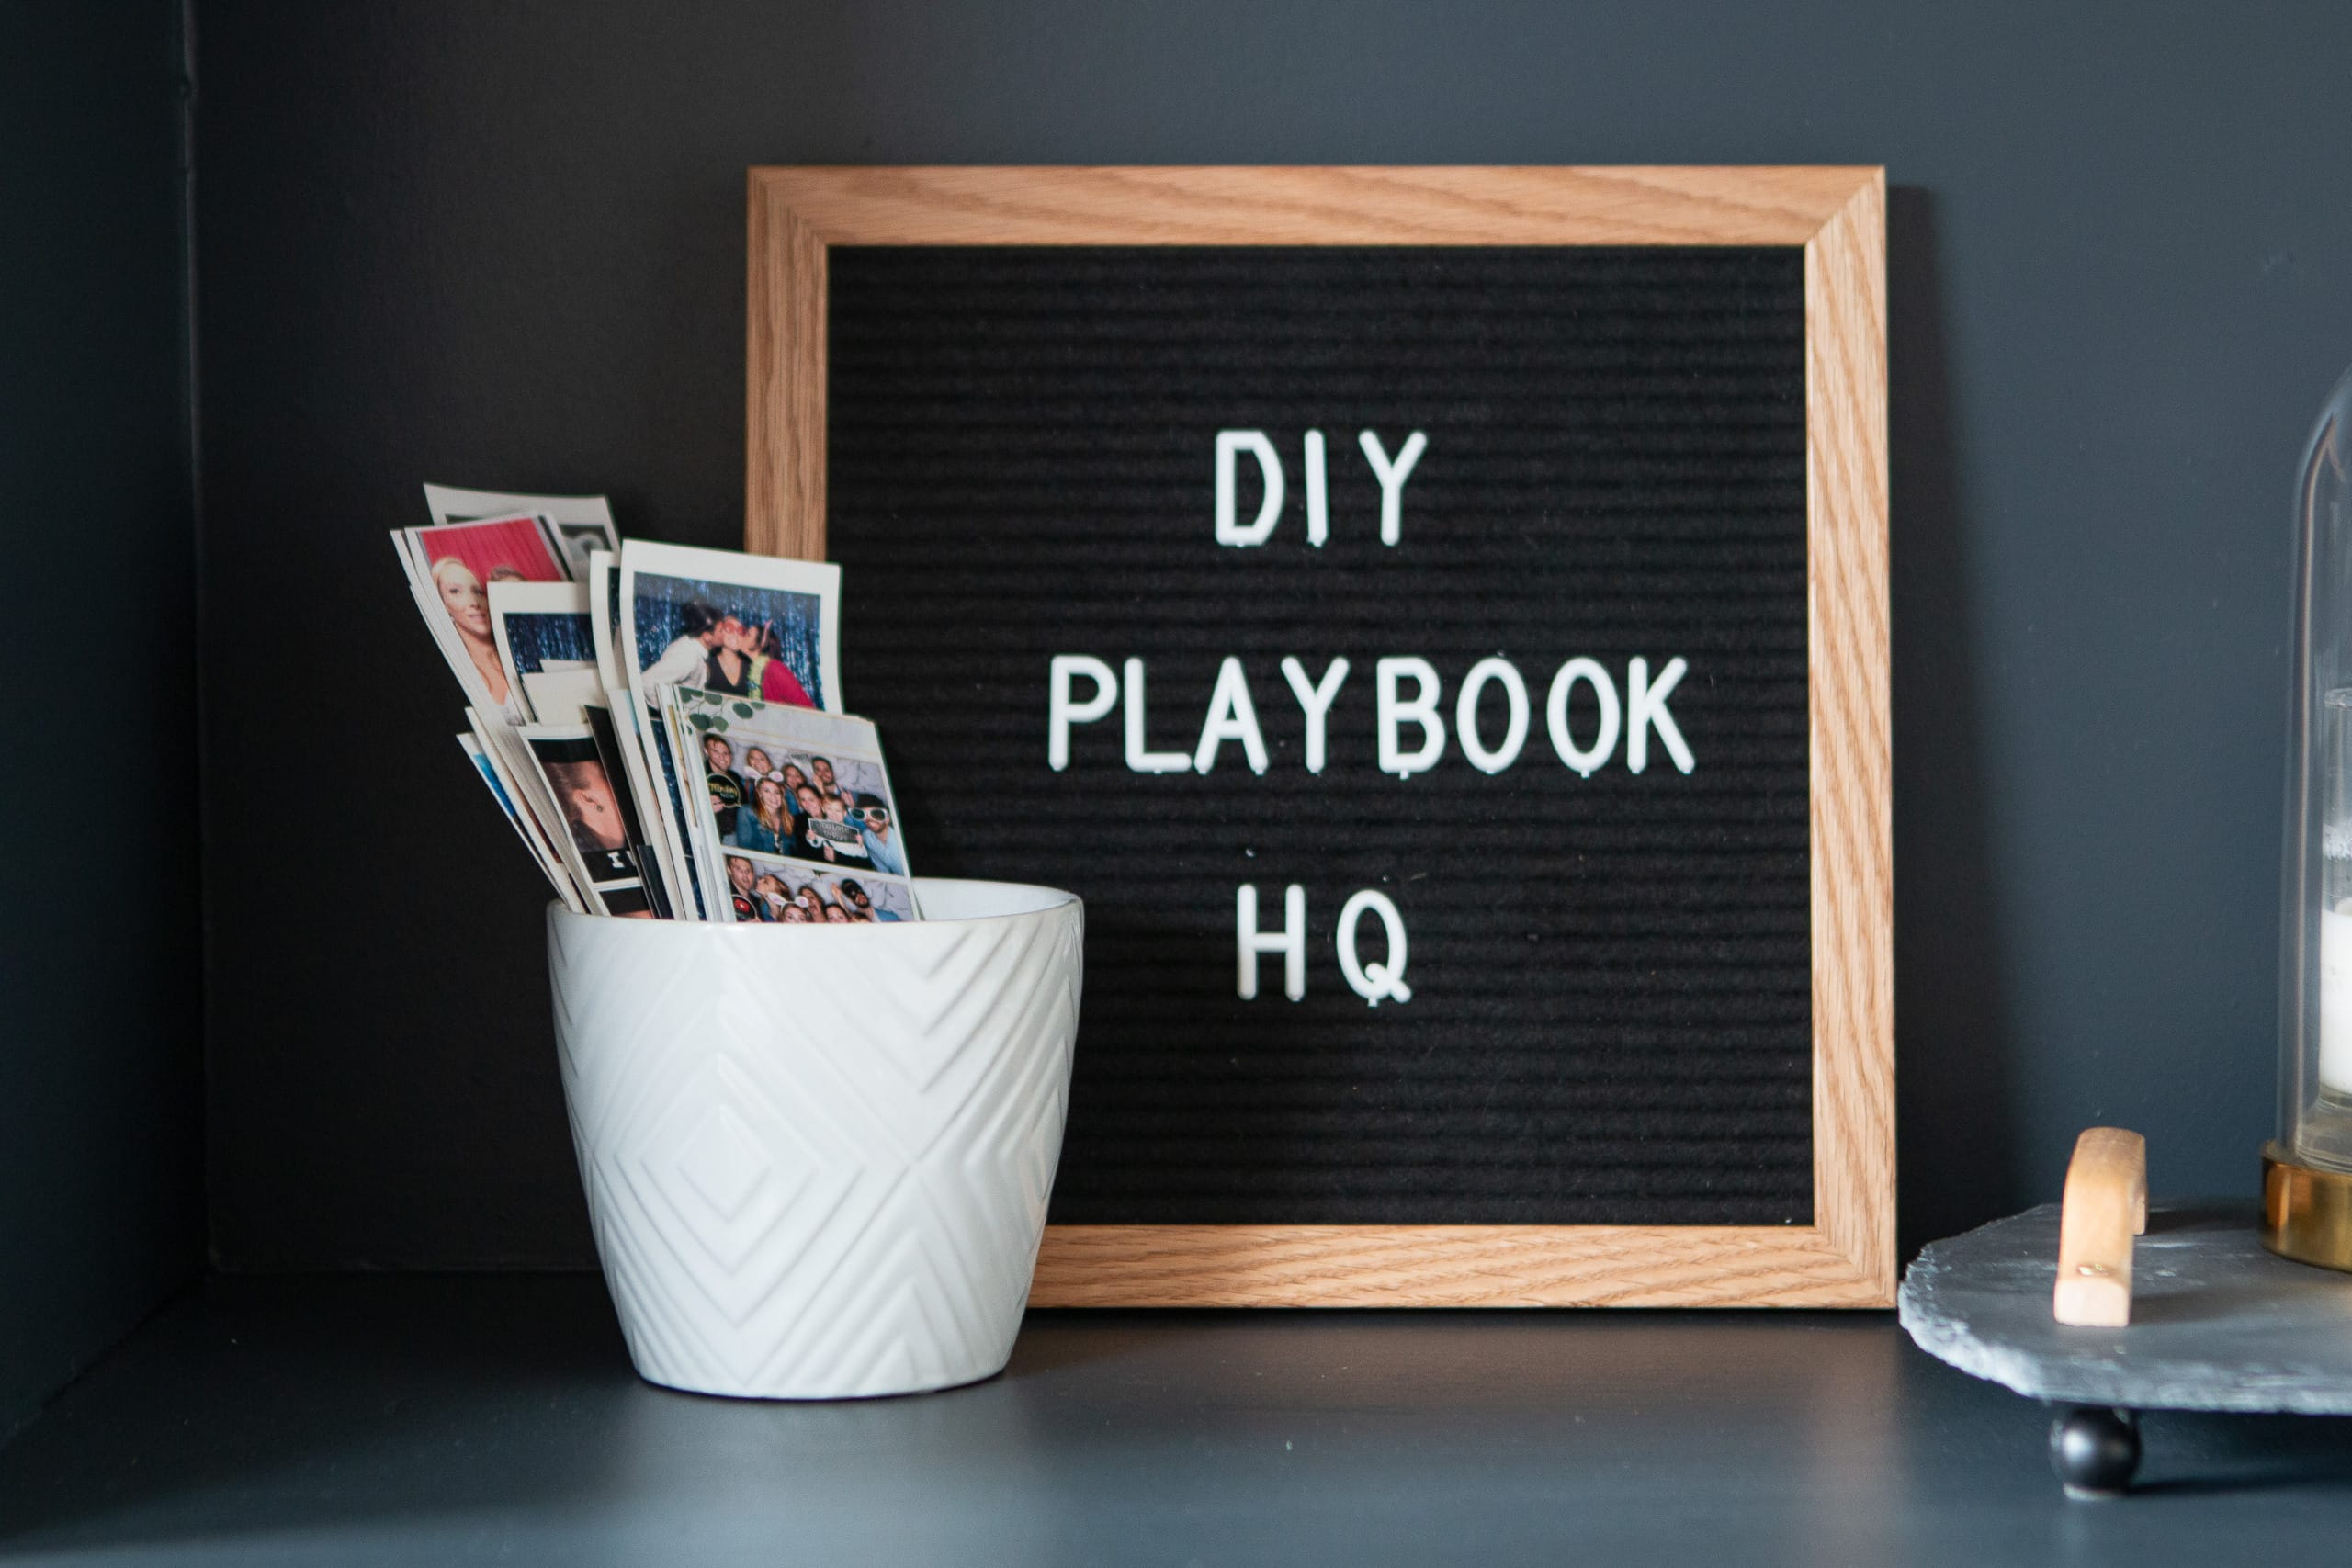 DIY Playbook HQ